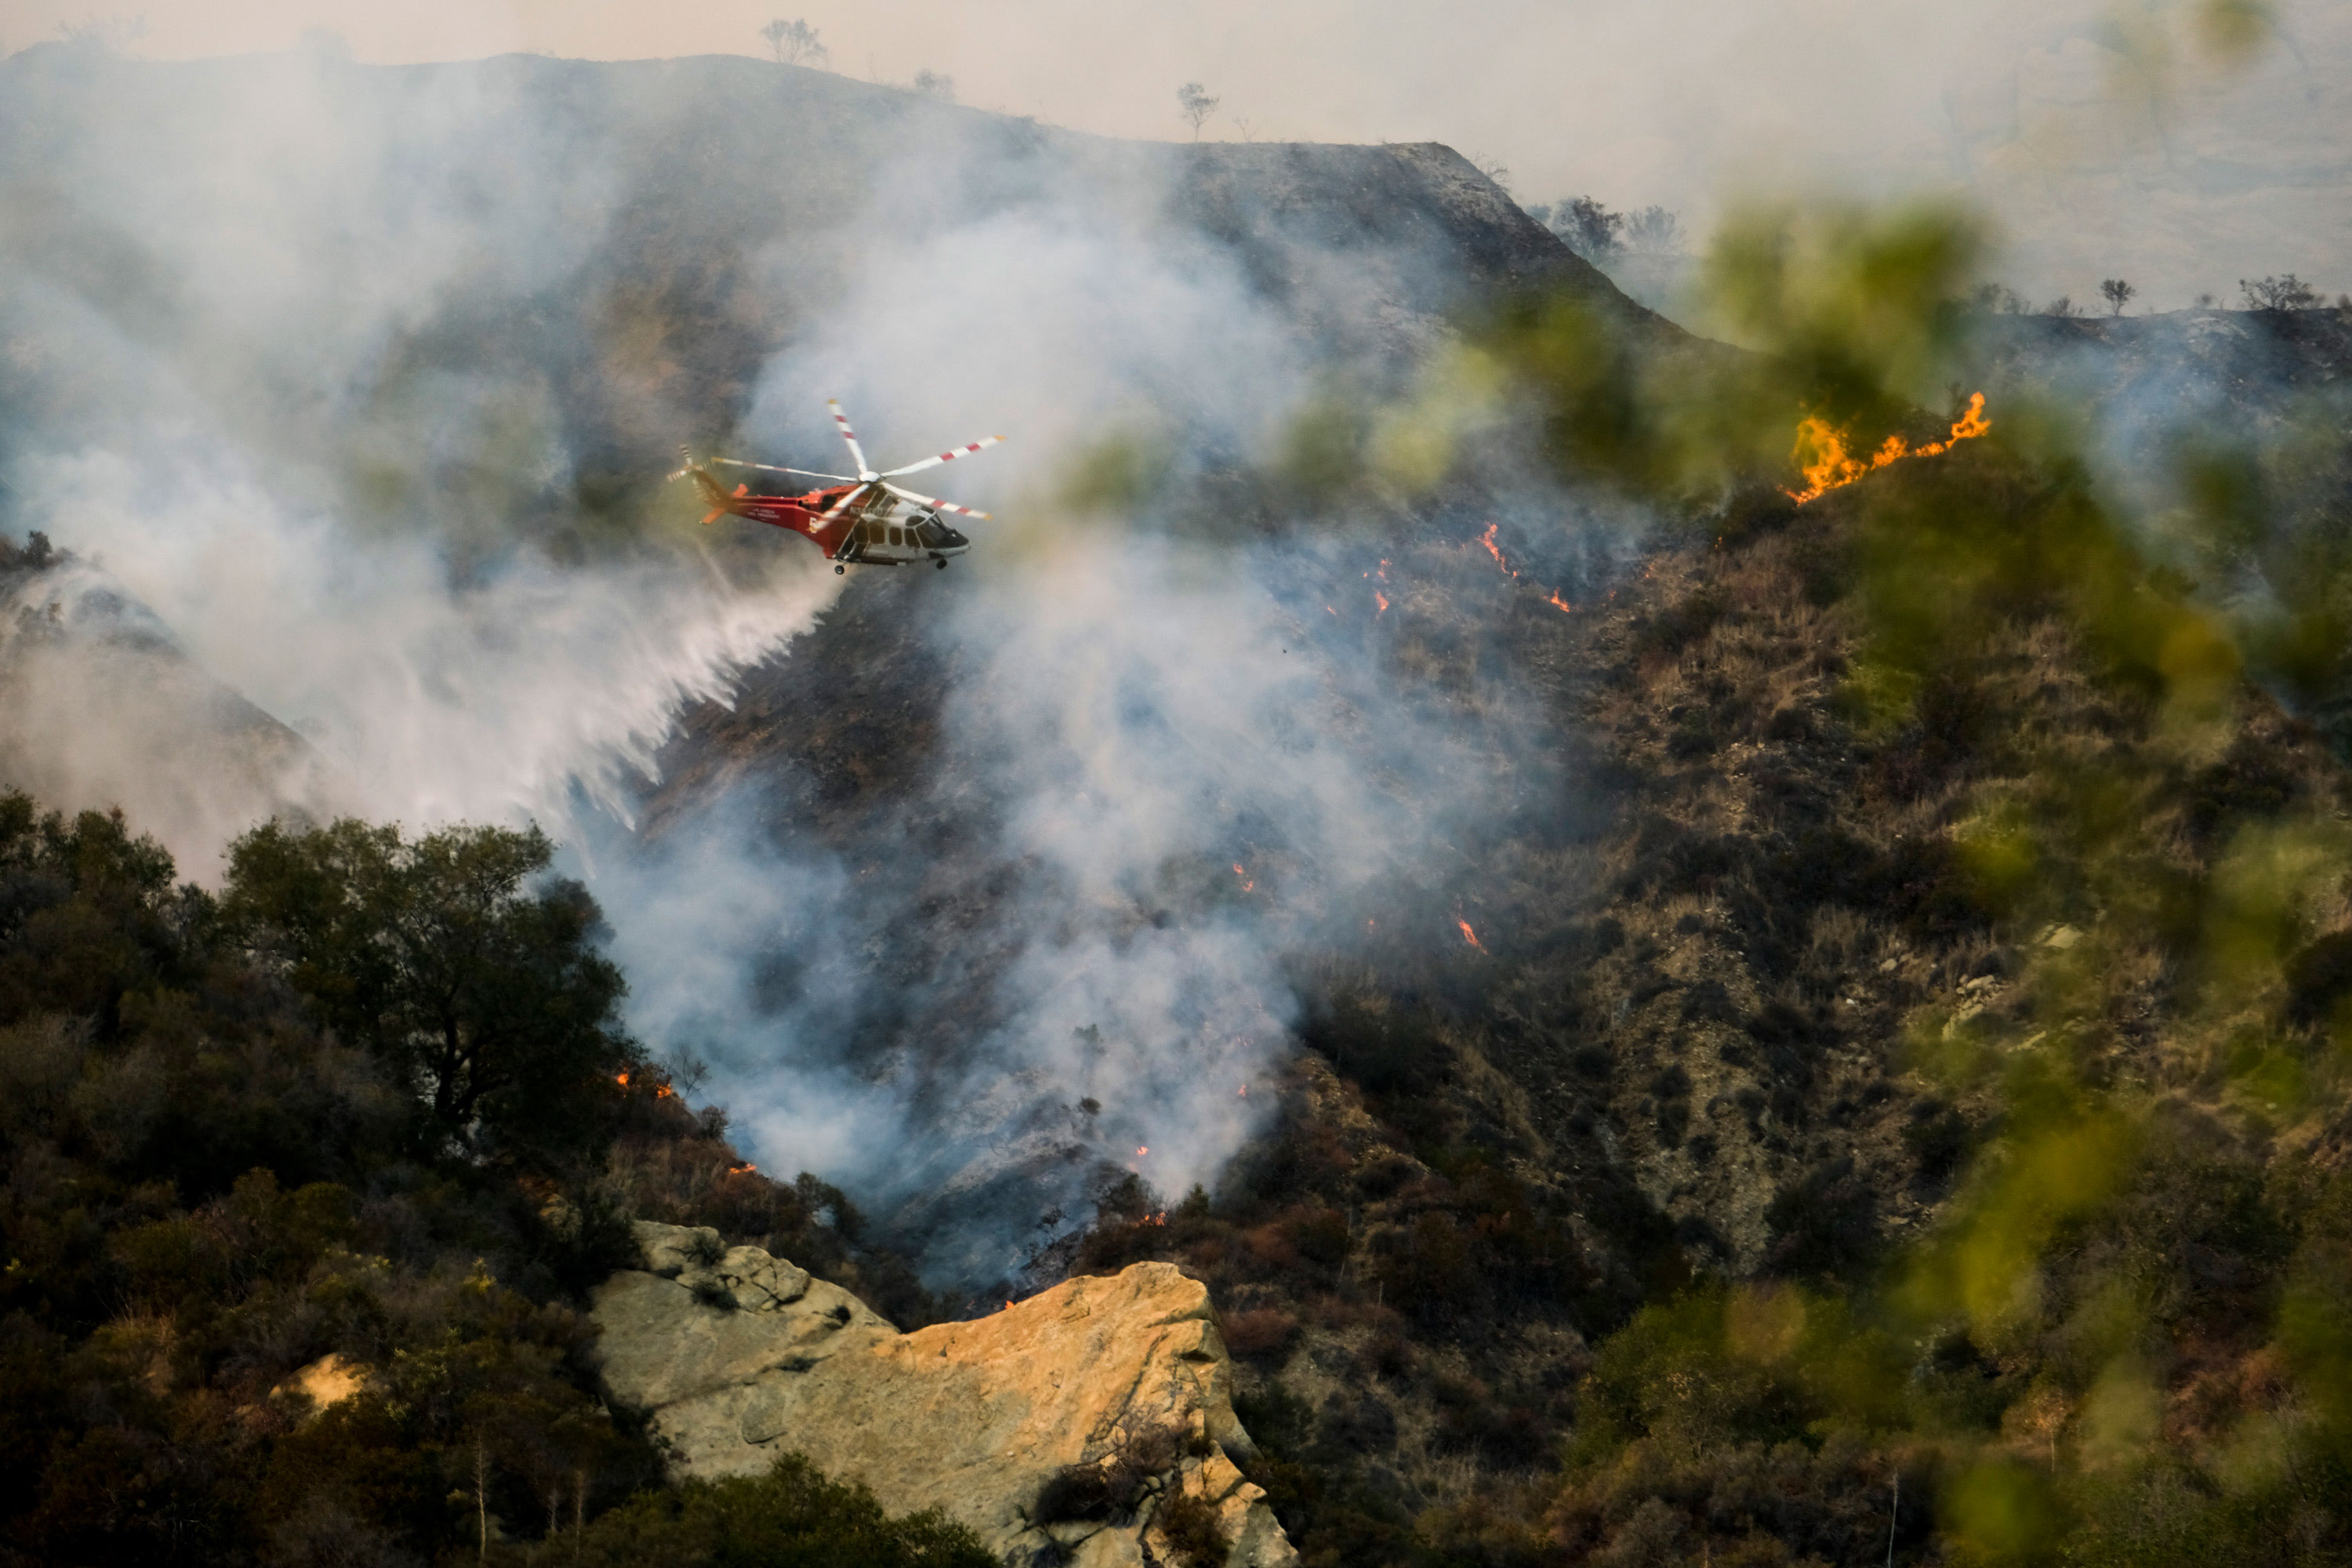 Mandatory wildfire evacuations are ordered for parts of western Los Angeles County